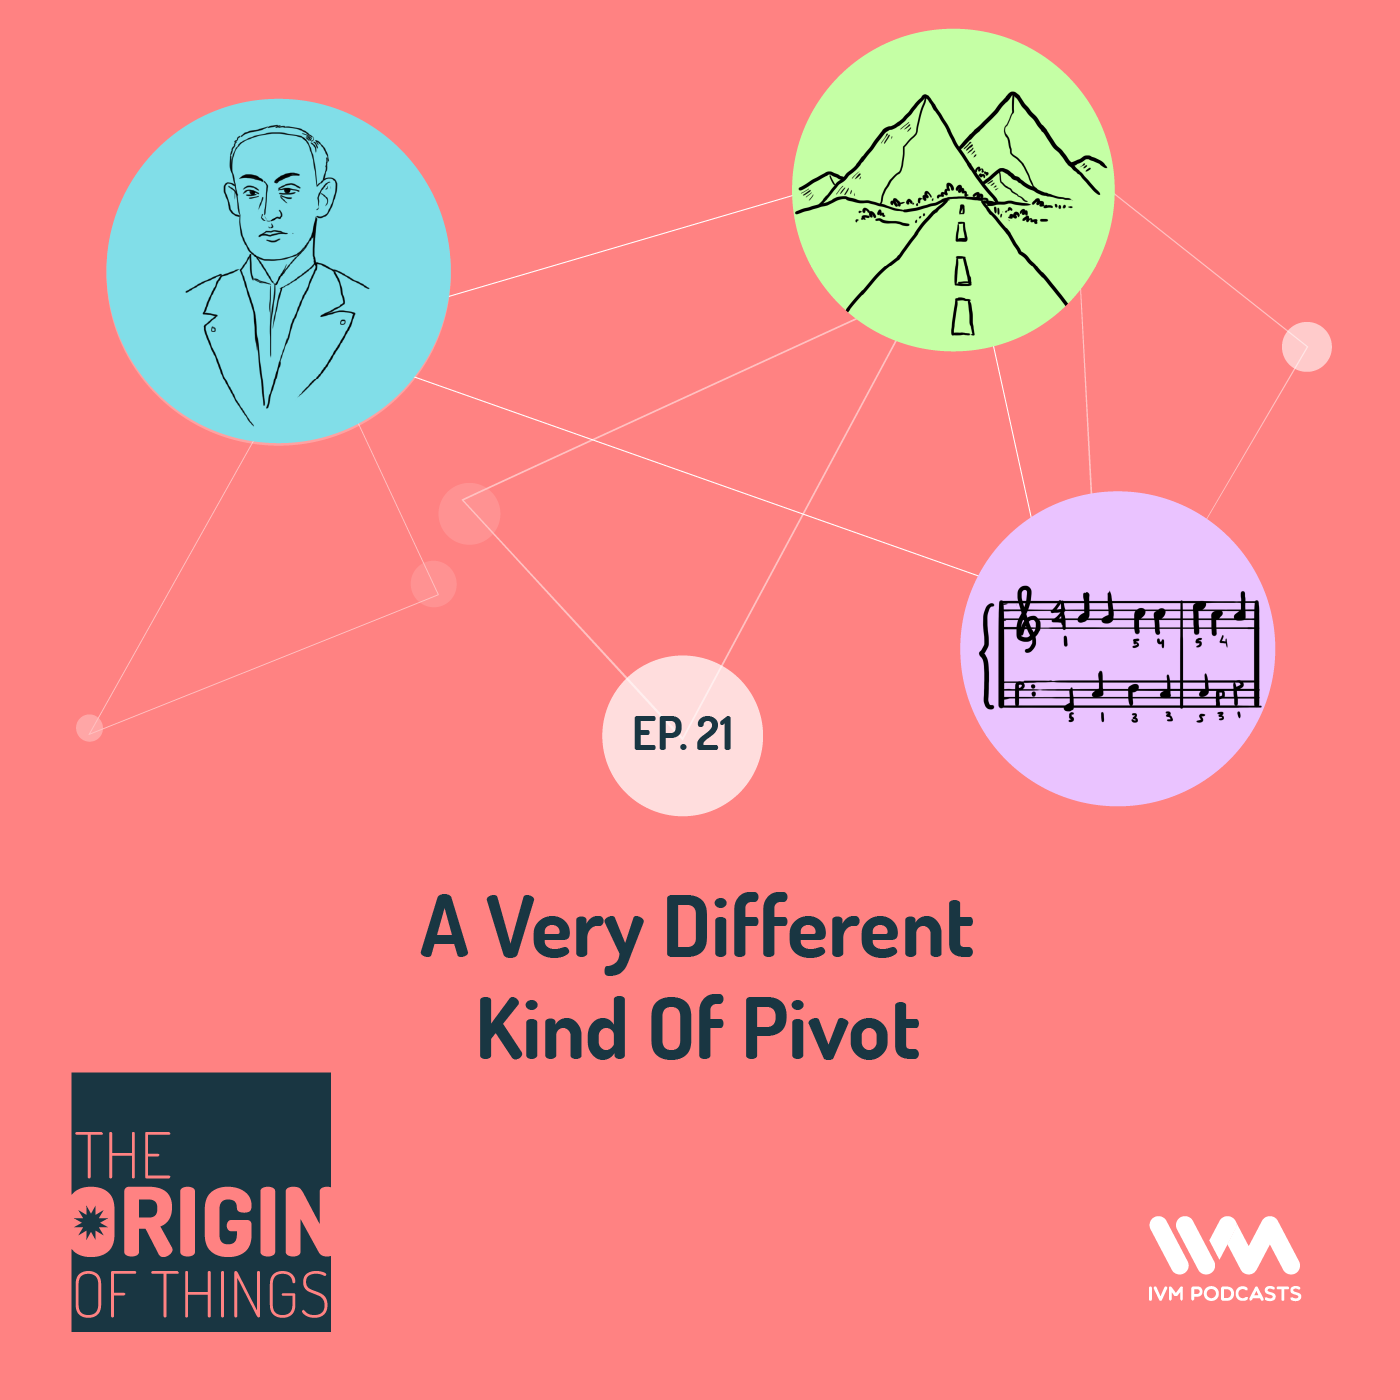 Ep. 21: A Very Different Kind Of Pivot